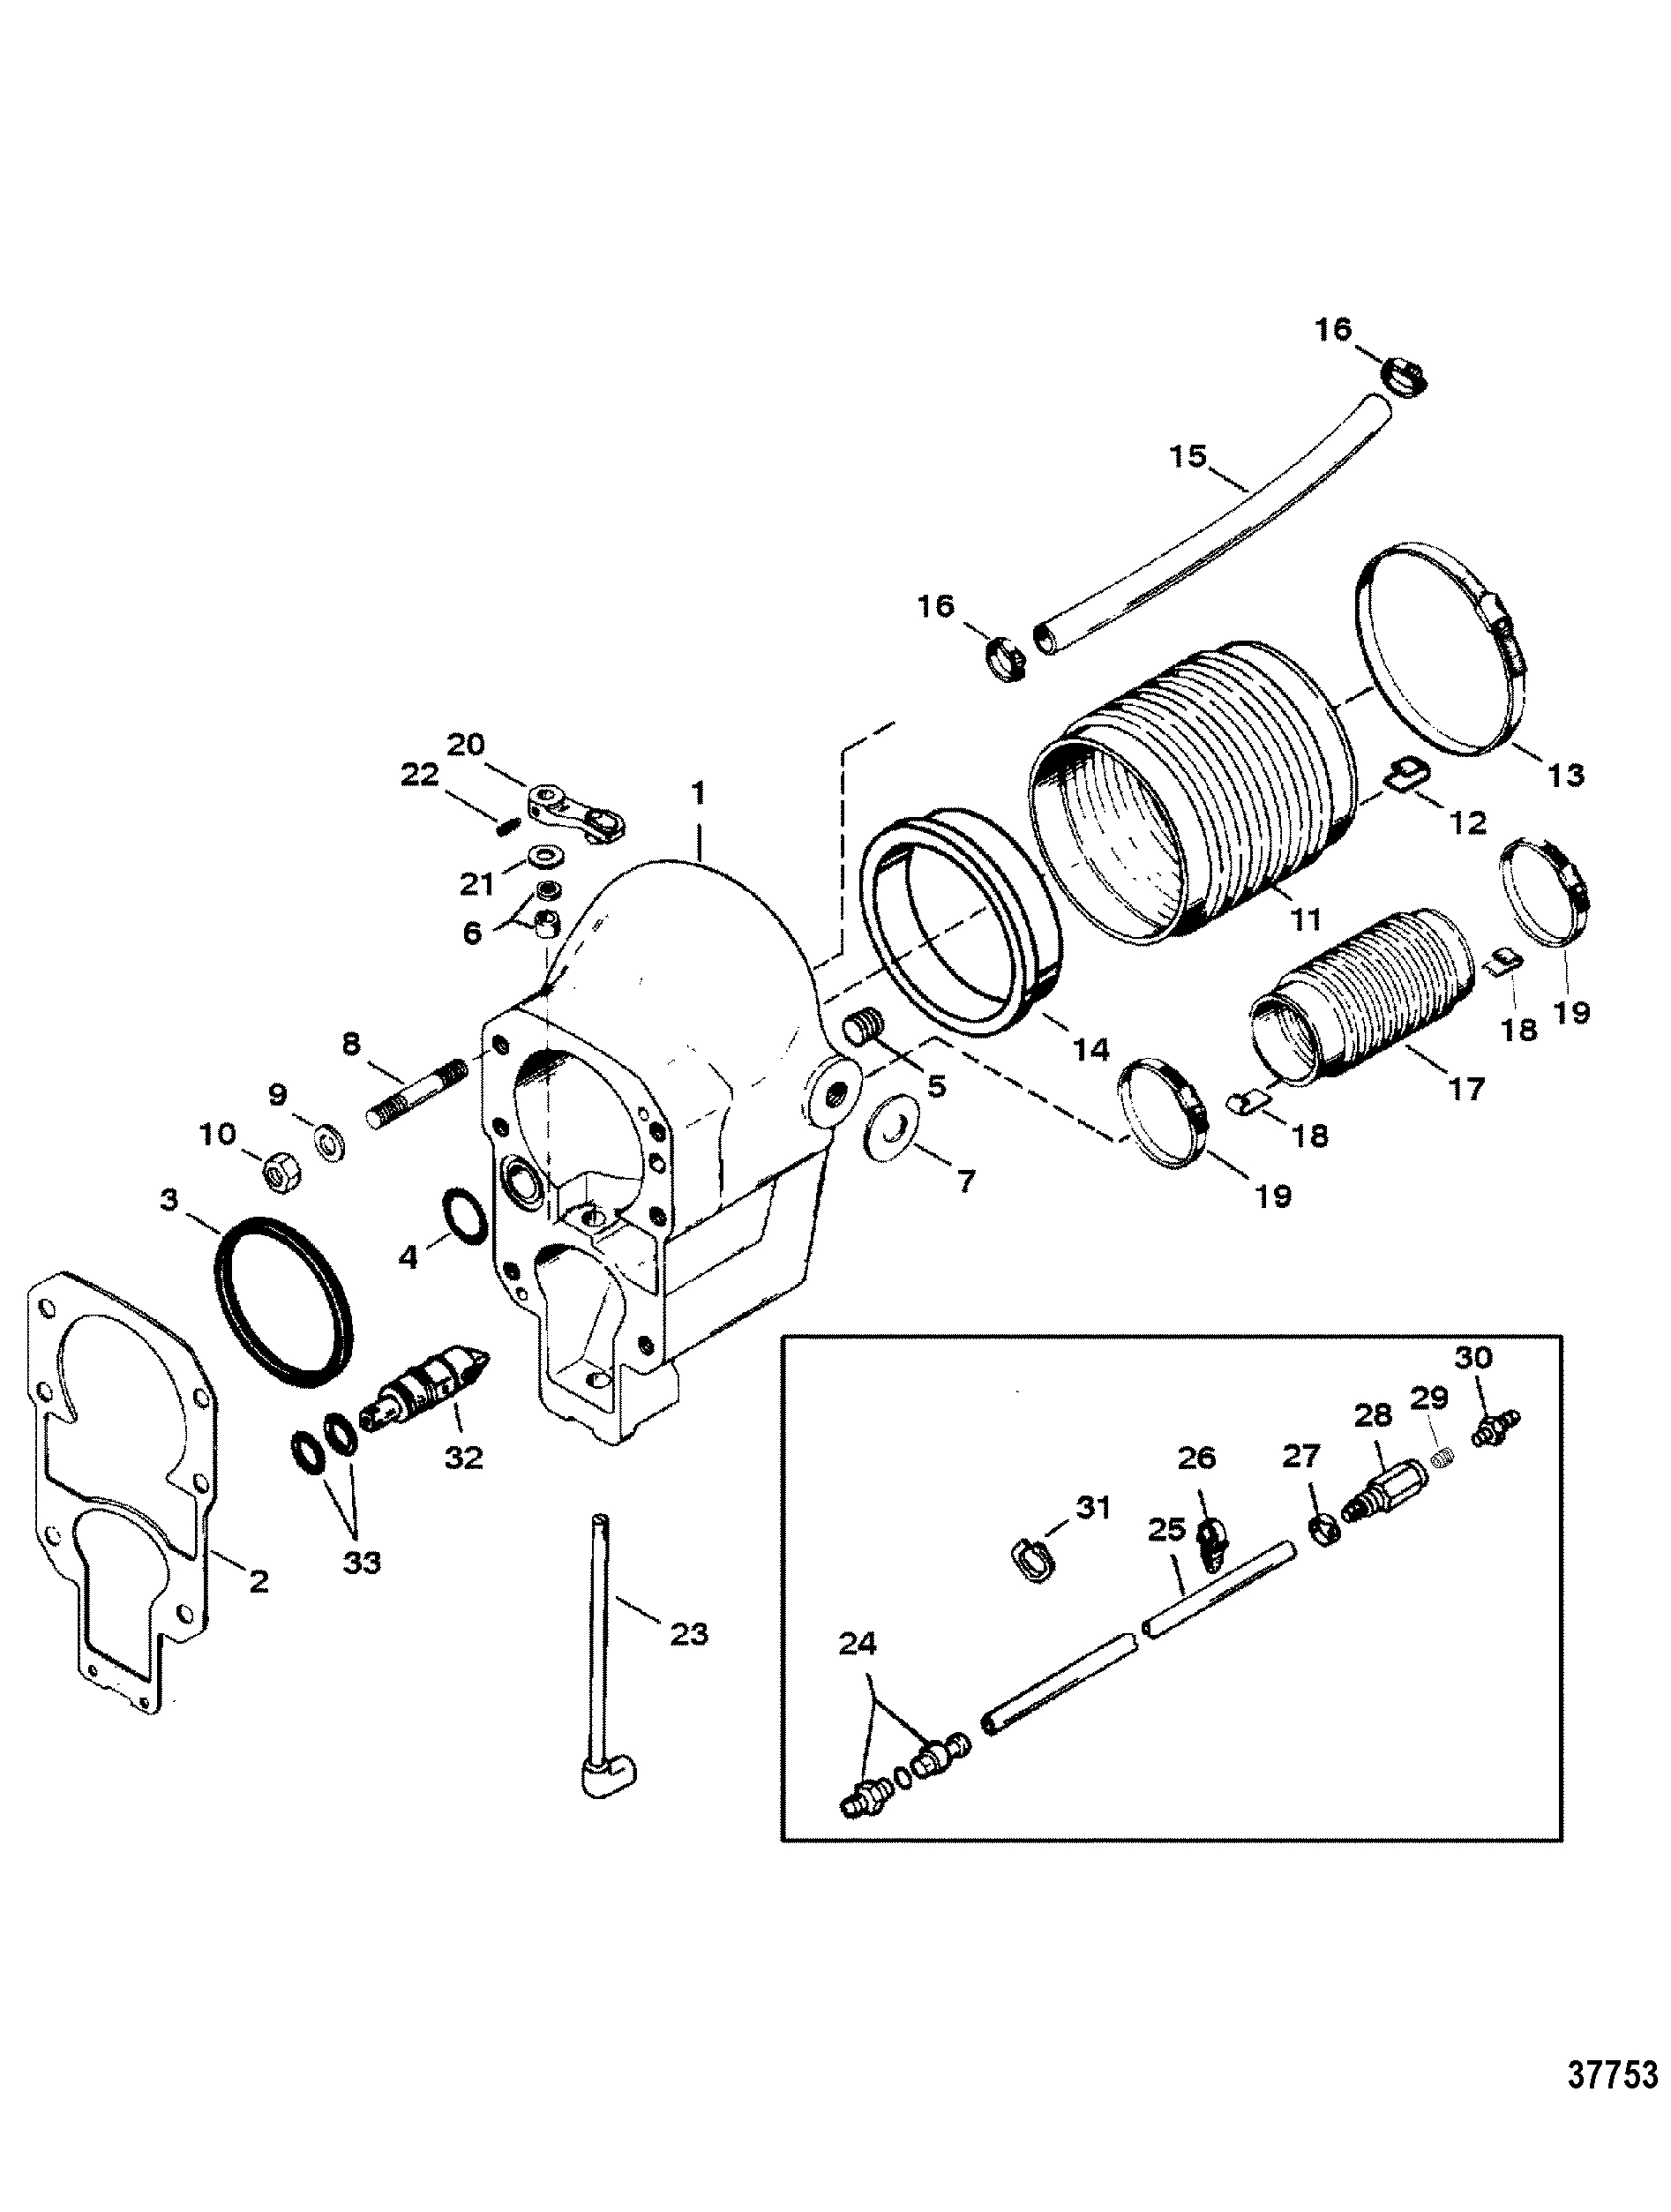 Outdrive Schematic